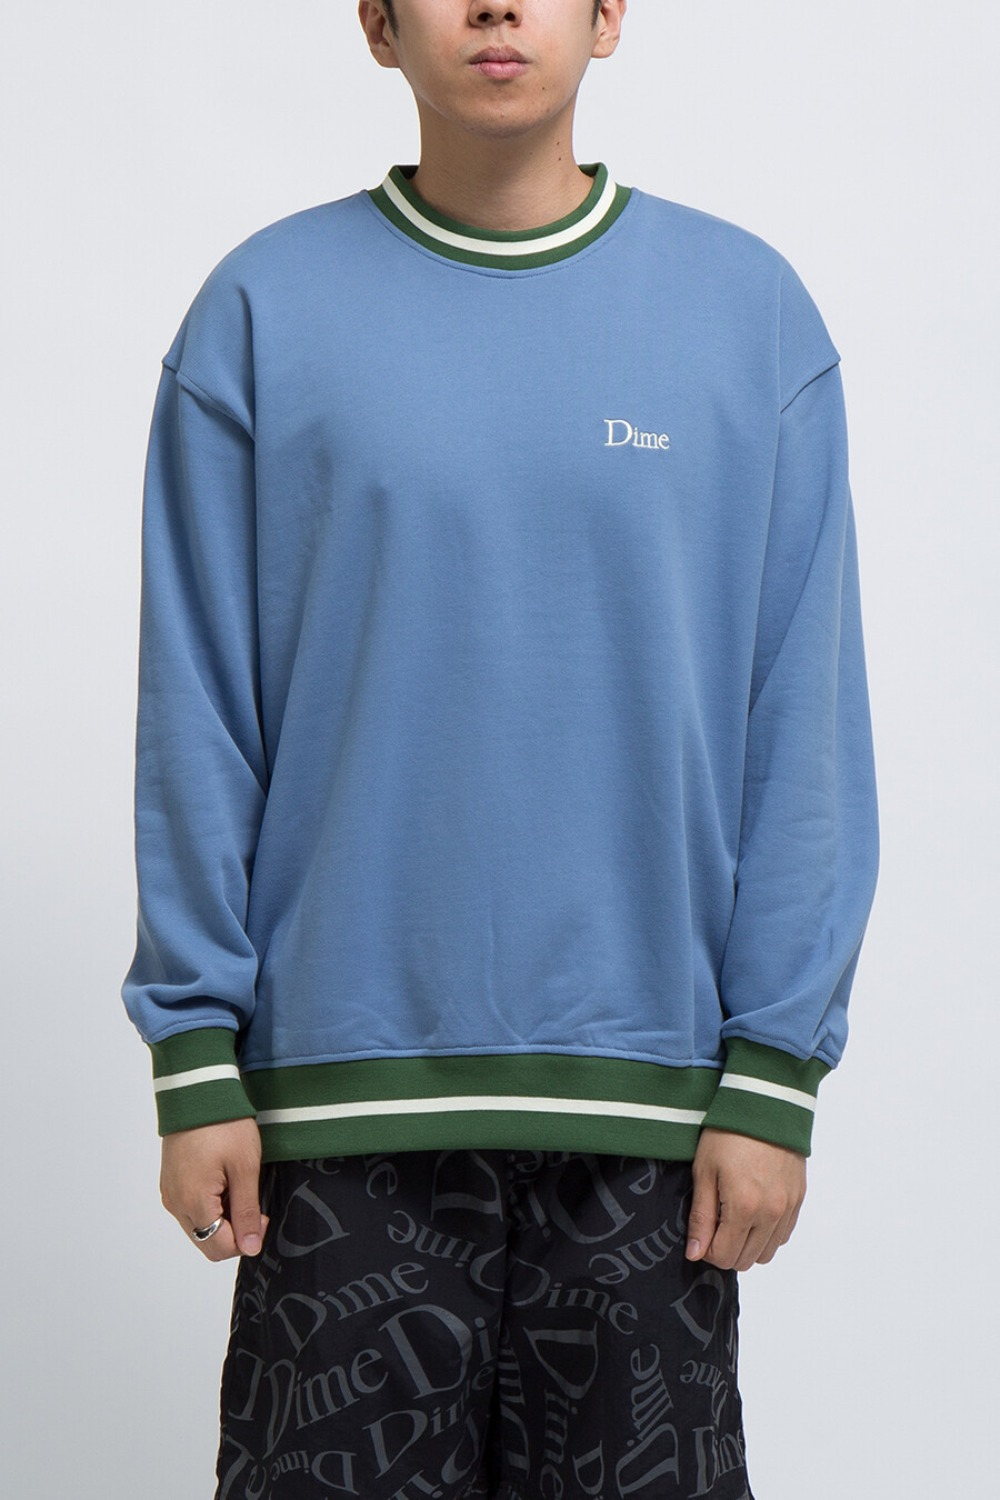 DIME CLASSIC FRENCH TERRY CREWNECK BLUE